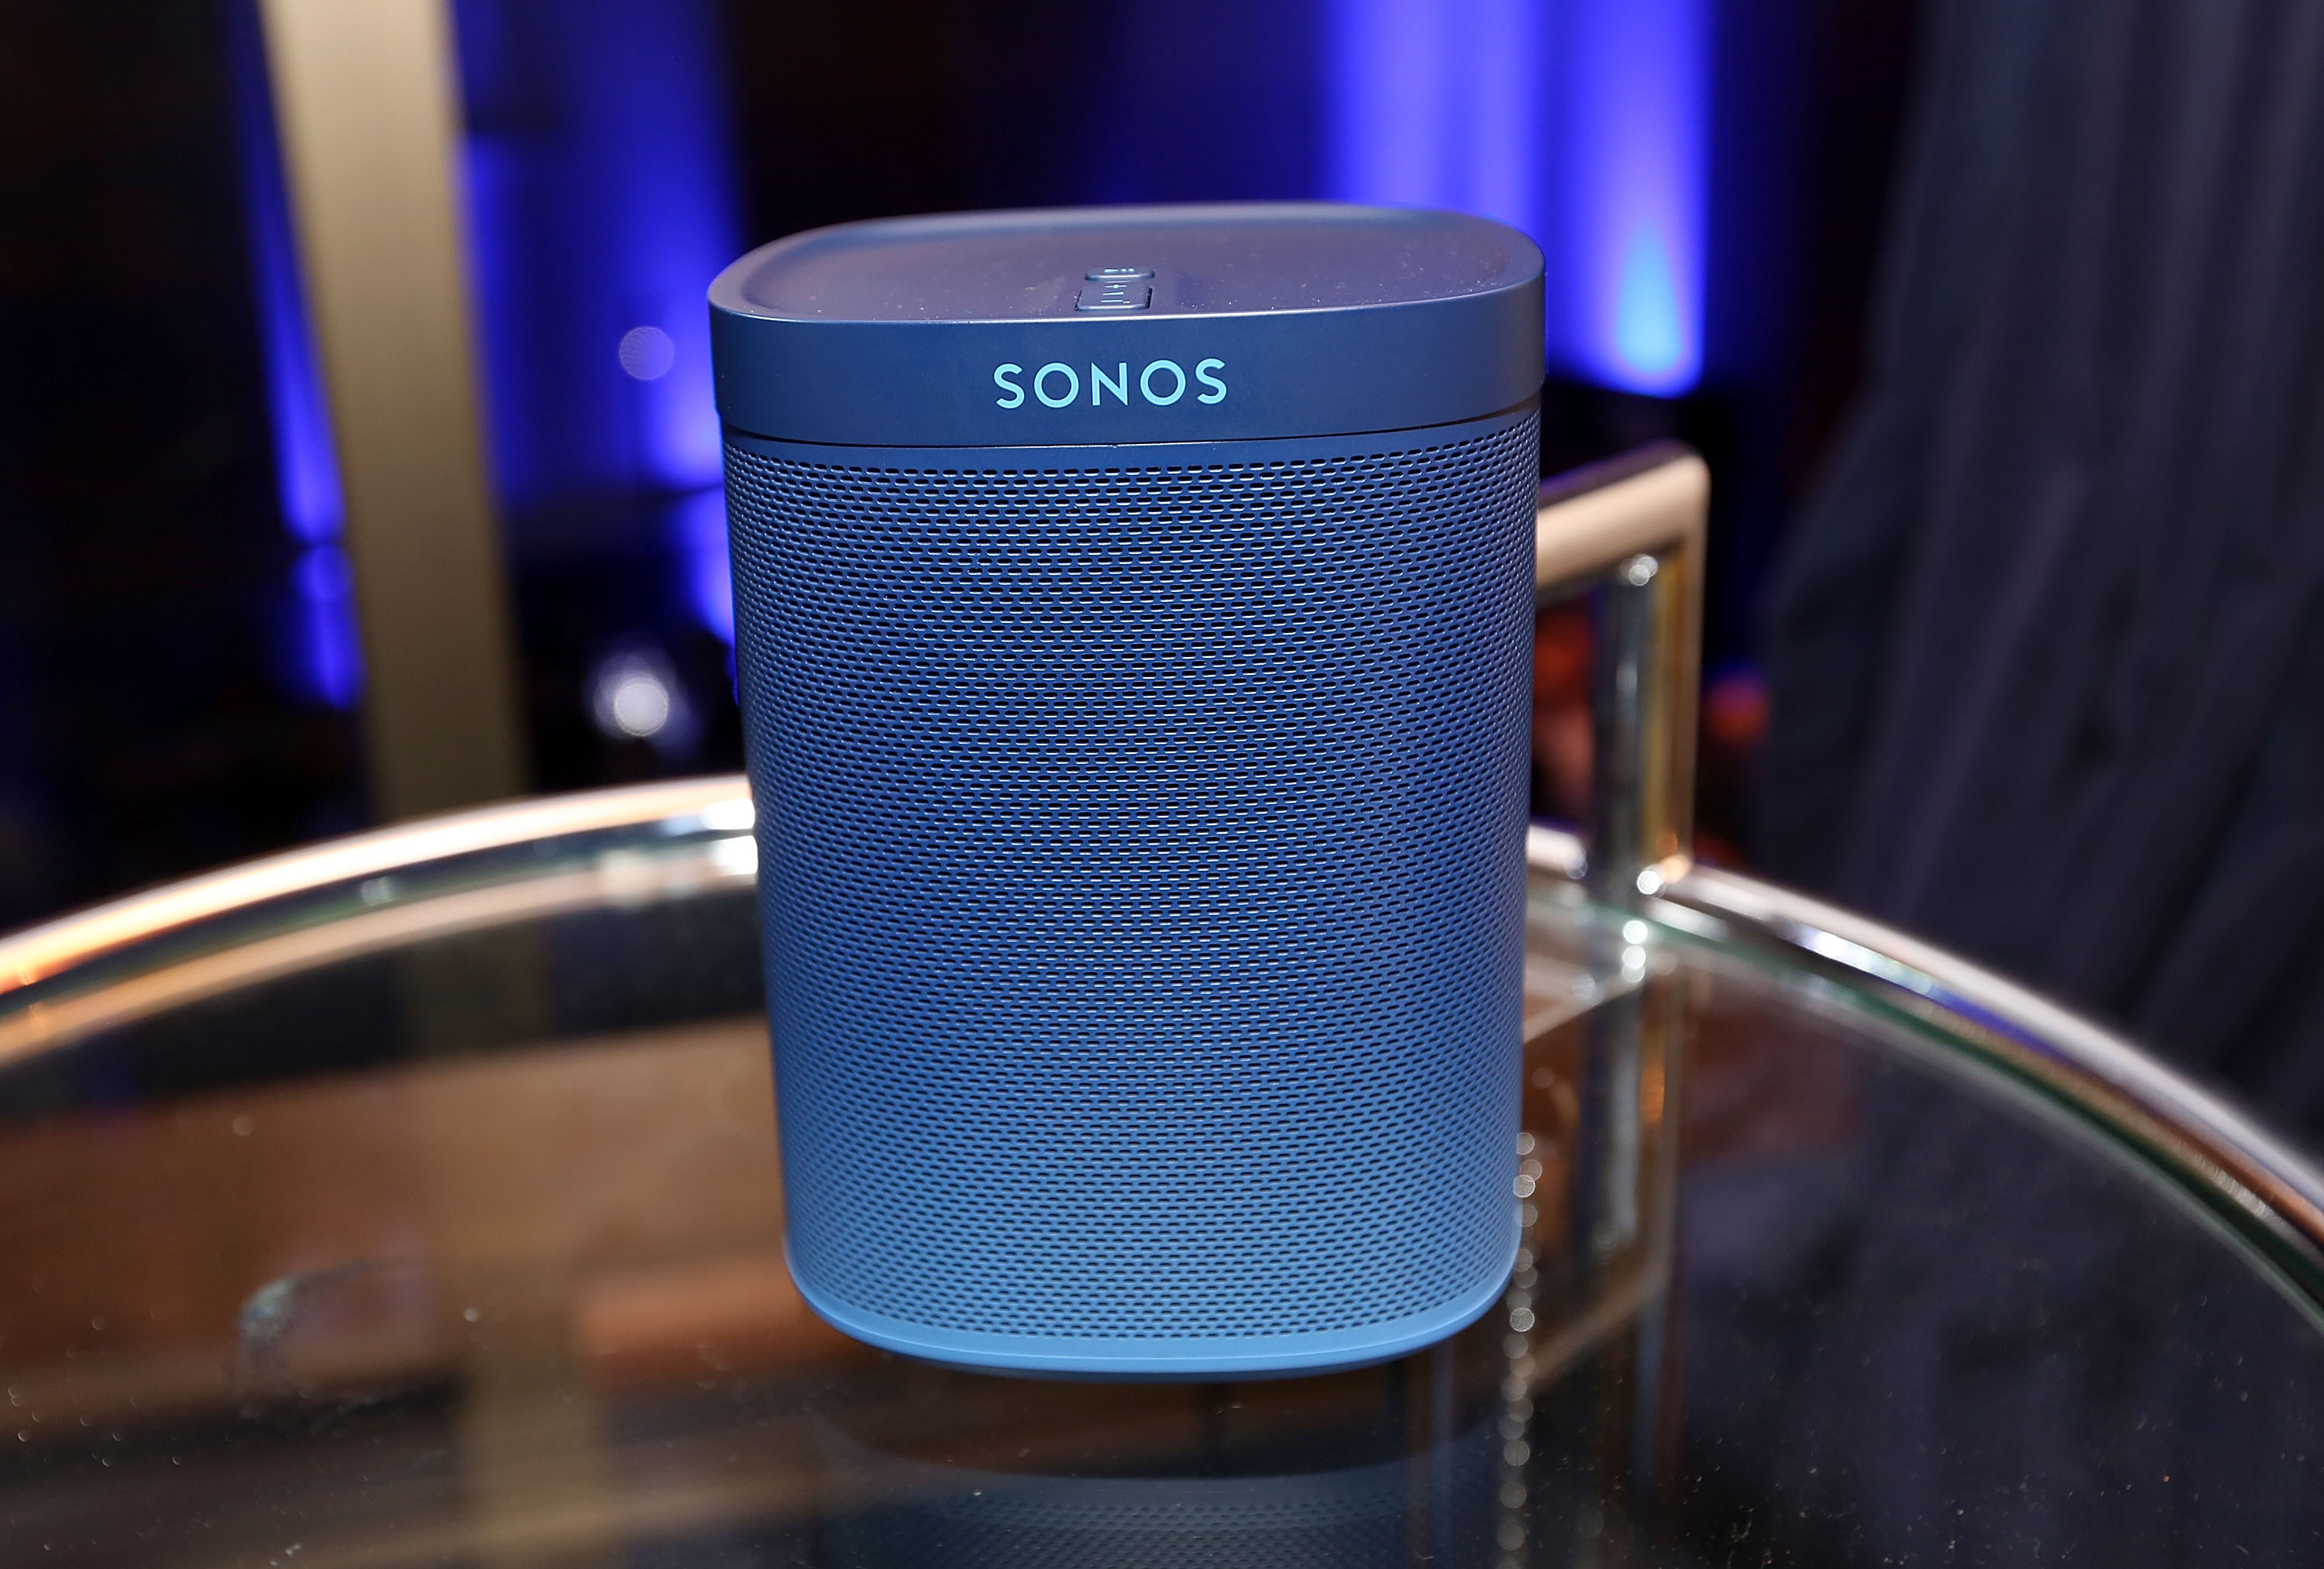 Sonos and Blue Note Records celebrate 75 years of jazz music and the launch of the Blue Note Limited Edition Sonos Speaker at The Iconic Capitol Records Tower on February 4, 2015 in the Hollywood district of Los Angeles, California.